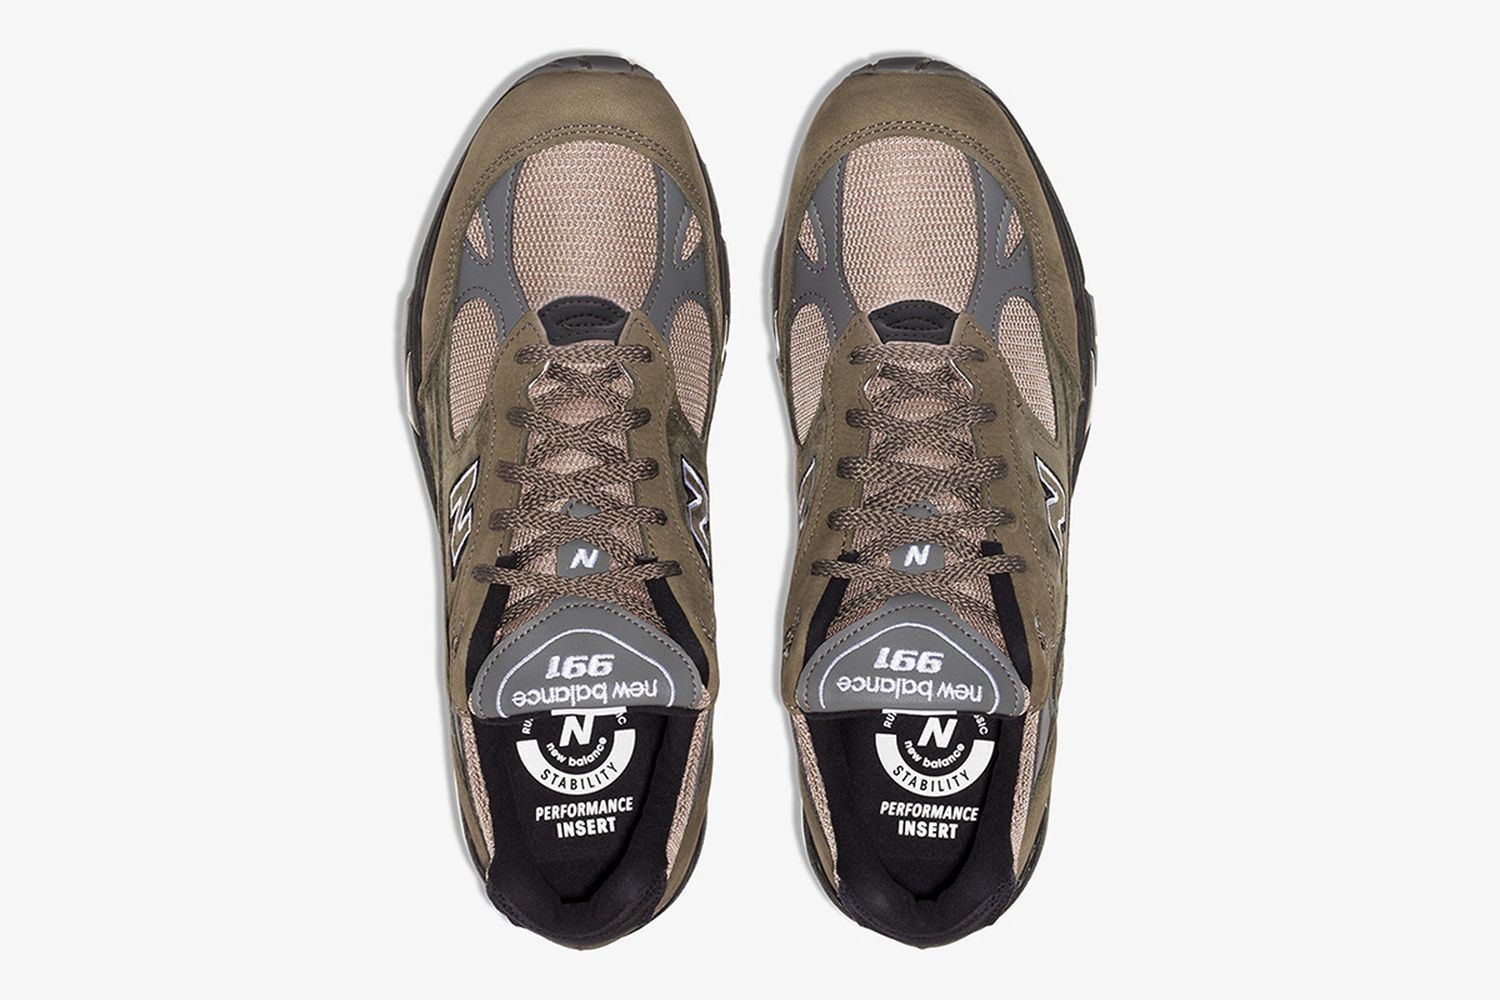 M991 Low Top Sneakers